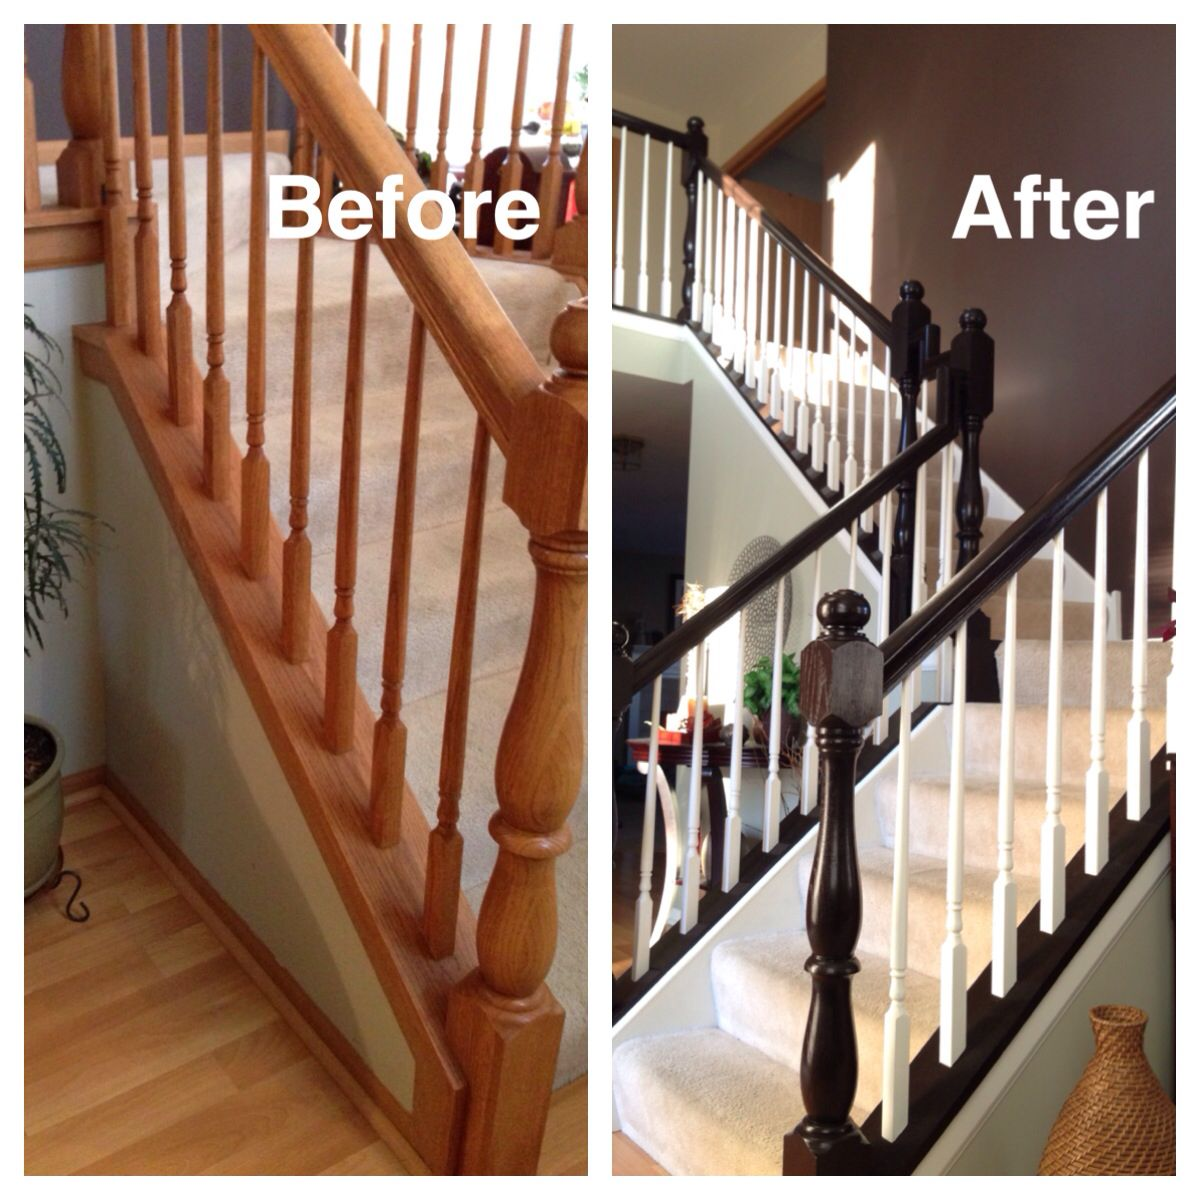 Stair Designs Railings Jam Stairs Amp Railing Designs: Honey Oak Stairs Redo: General Finishes Java Gel Stain